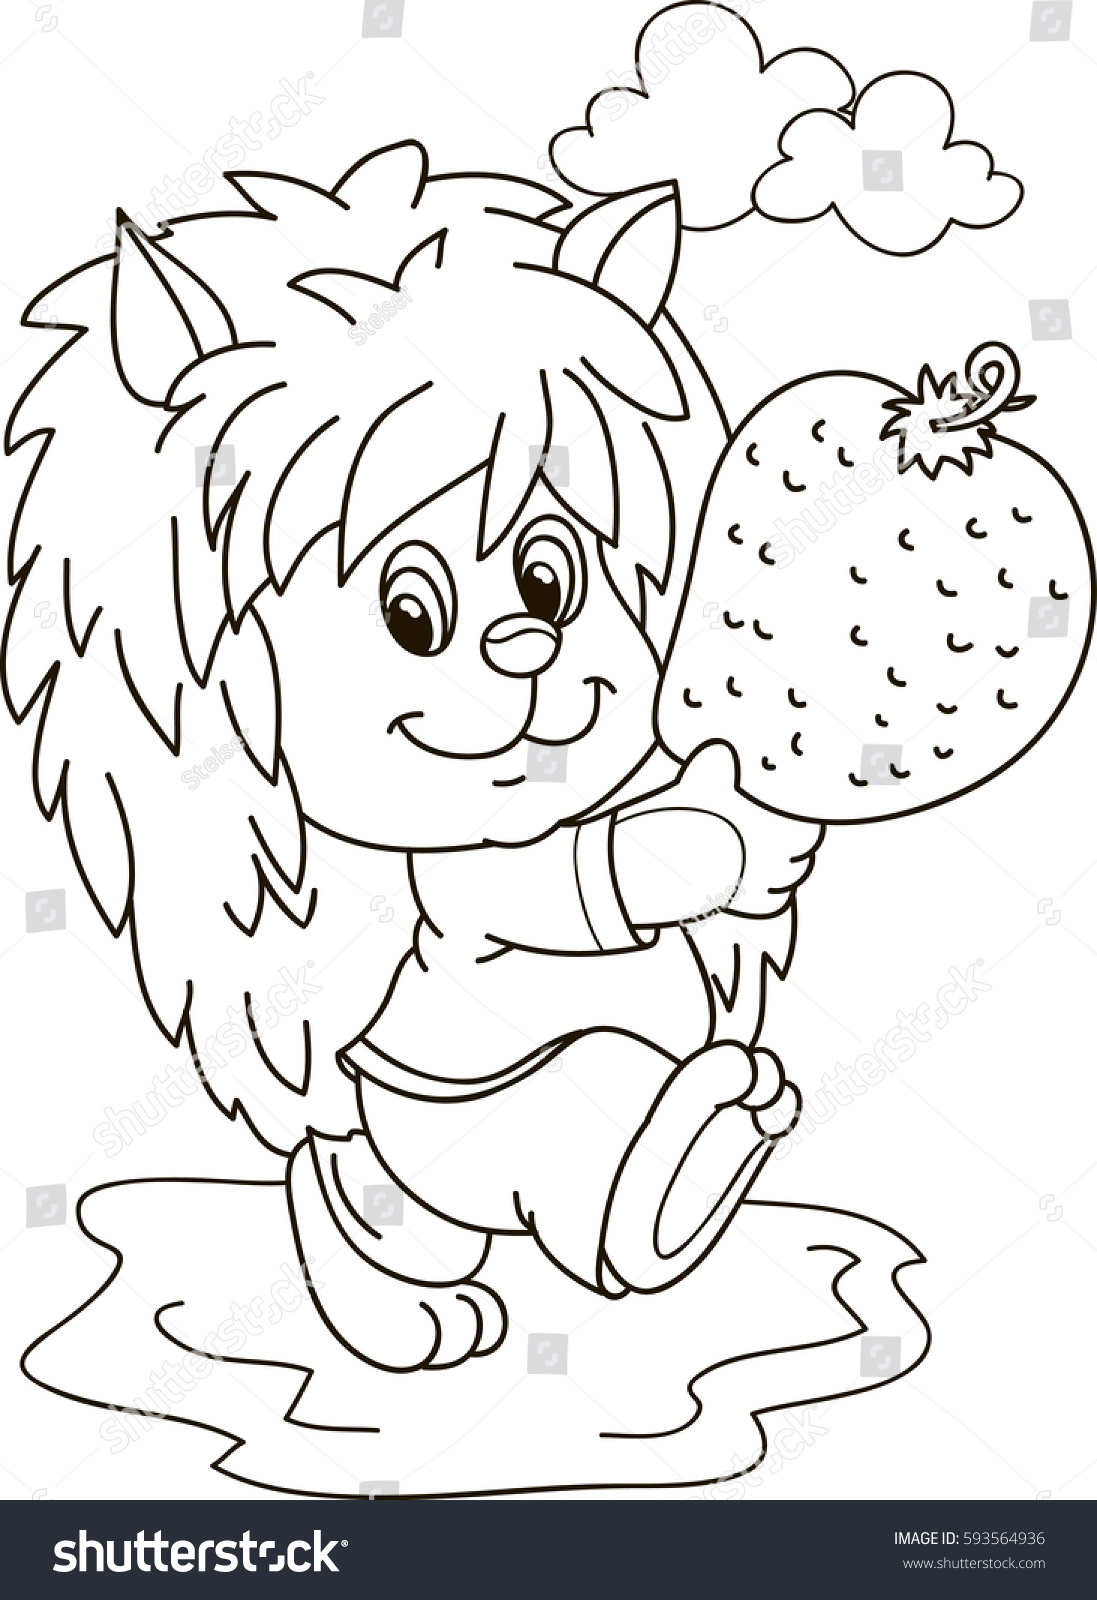 strawberry coloring page with face eliolera com